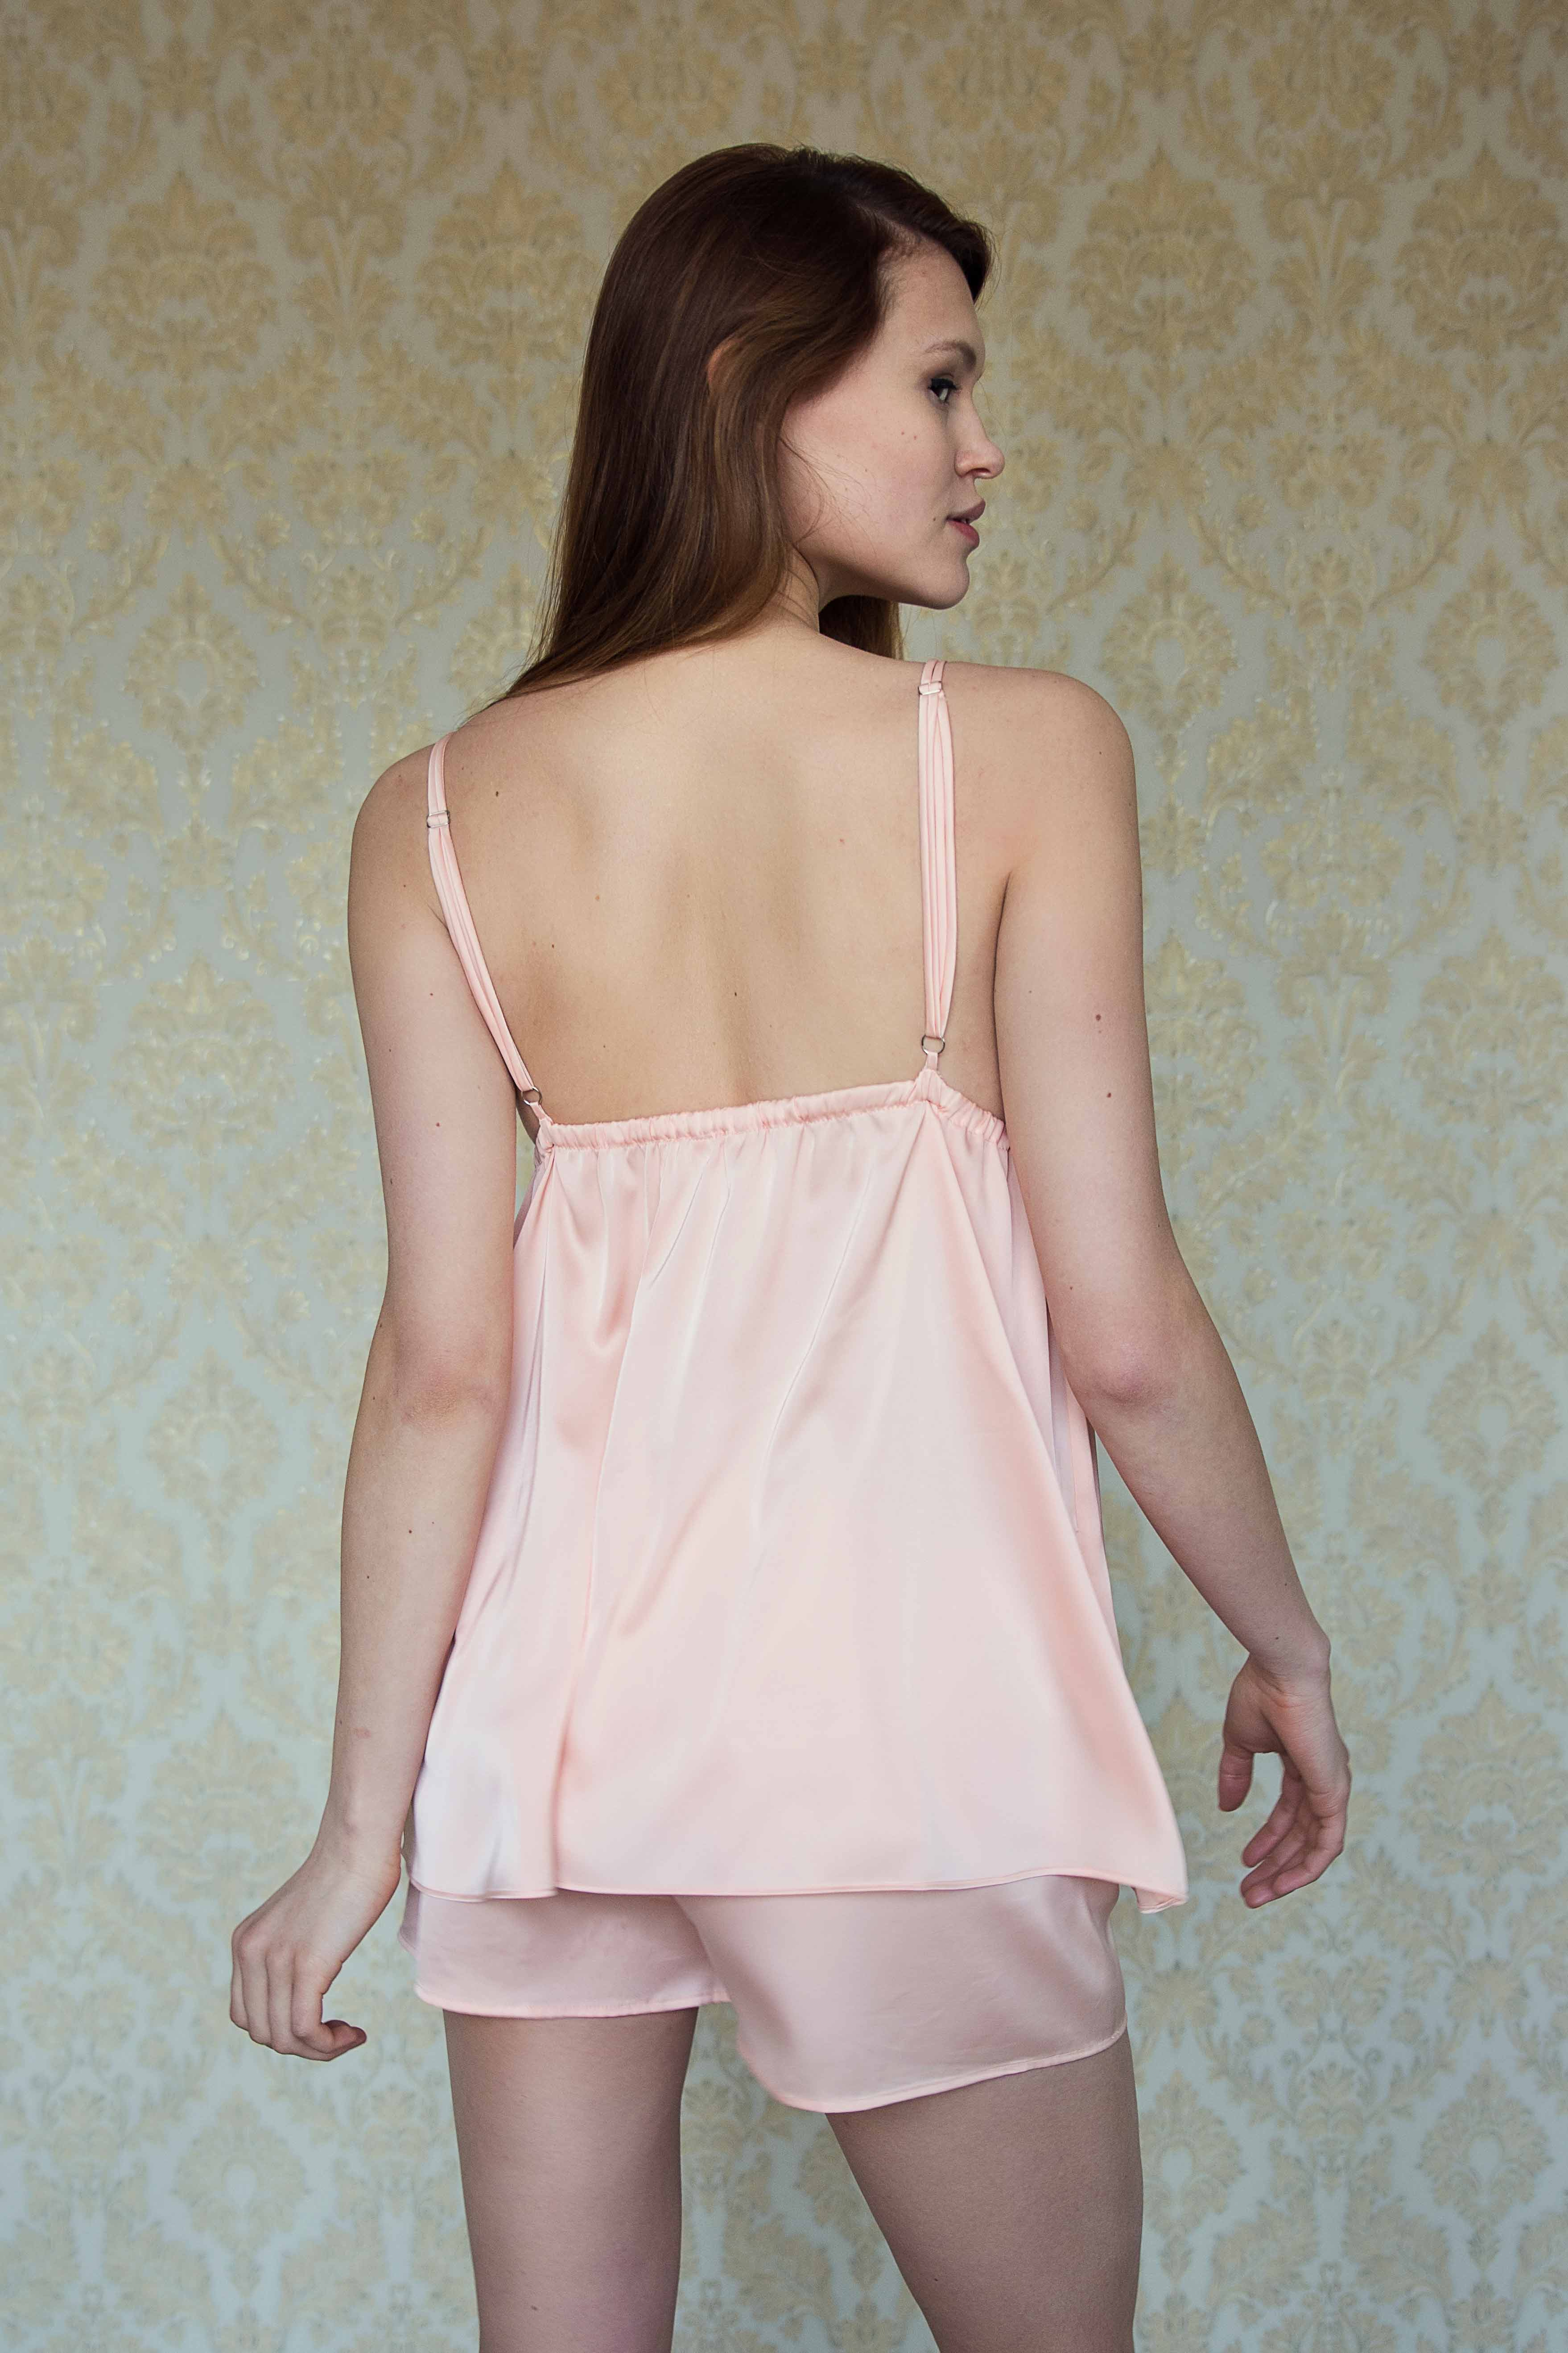 Orange satin silk babydoll pajama with floral lace image | IDentity Lingerie